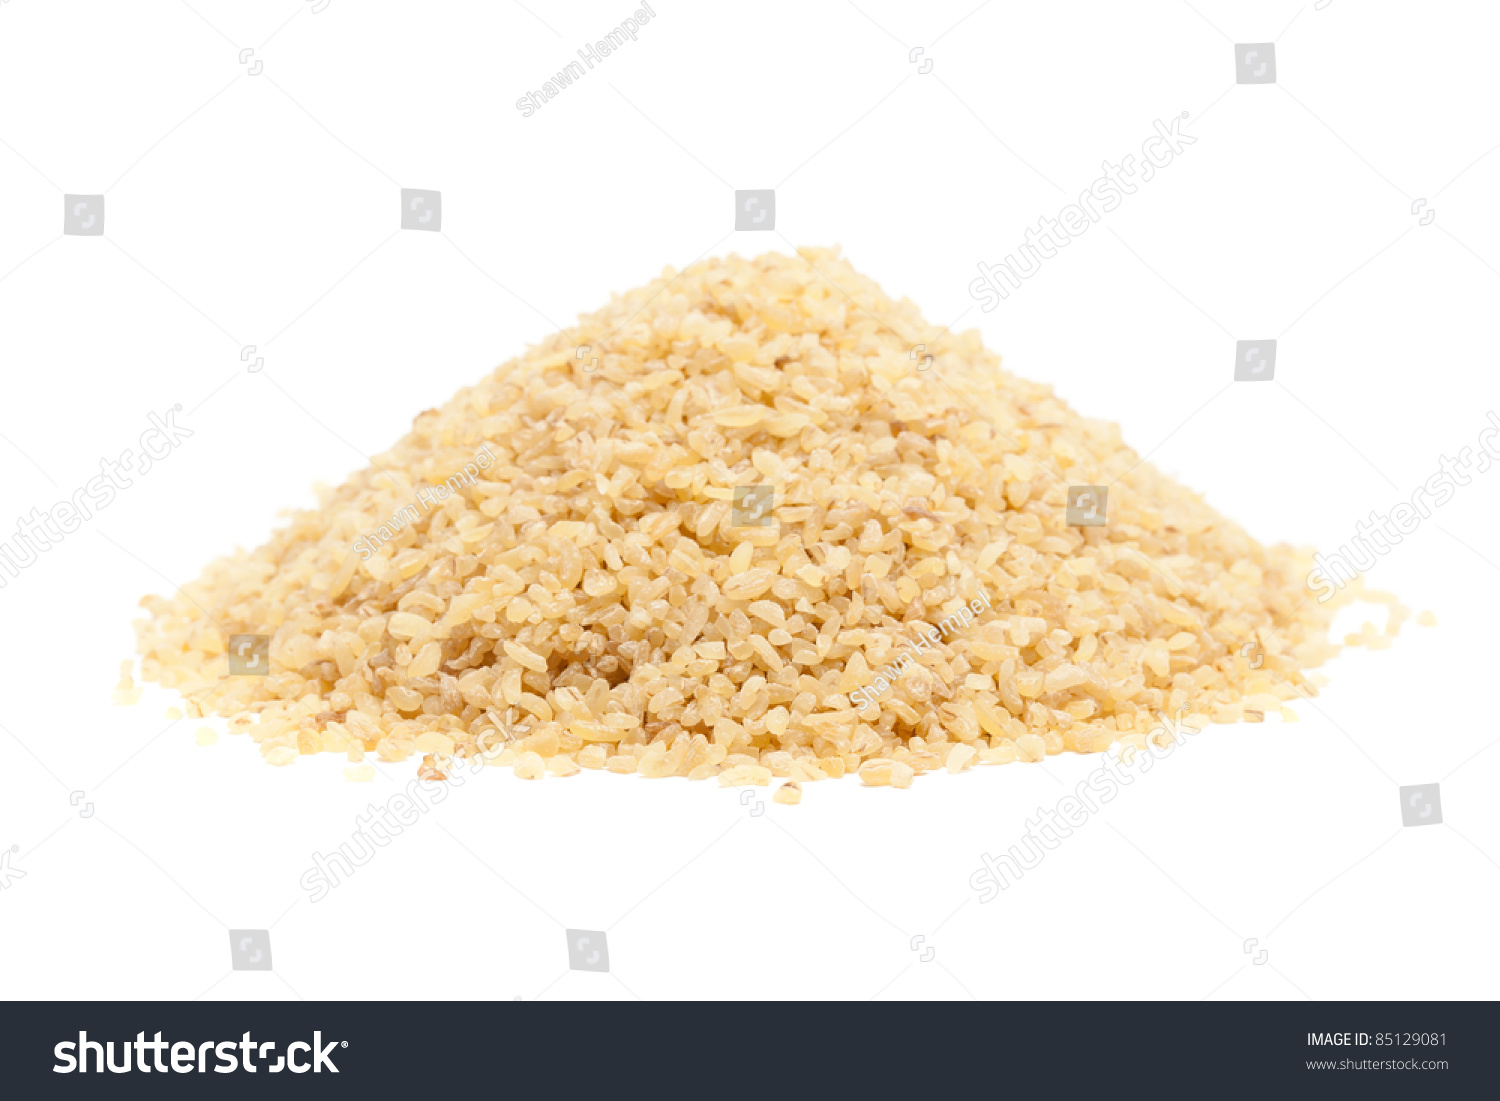 Raw Dried Organic Couscous Isolated On White Background Stock Photo 85129081 : Shutterstock1500 x 1101 jpeg 308kB